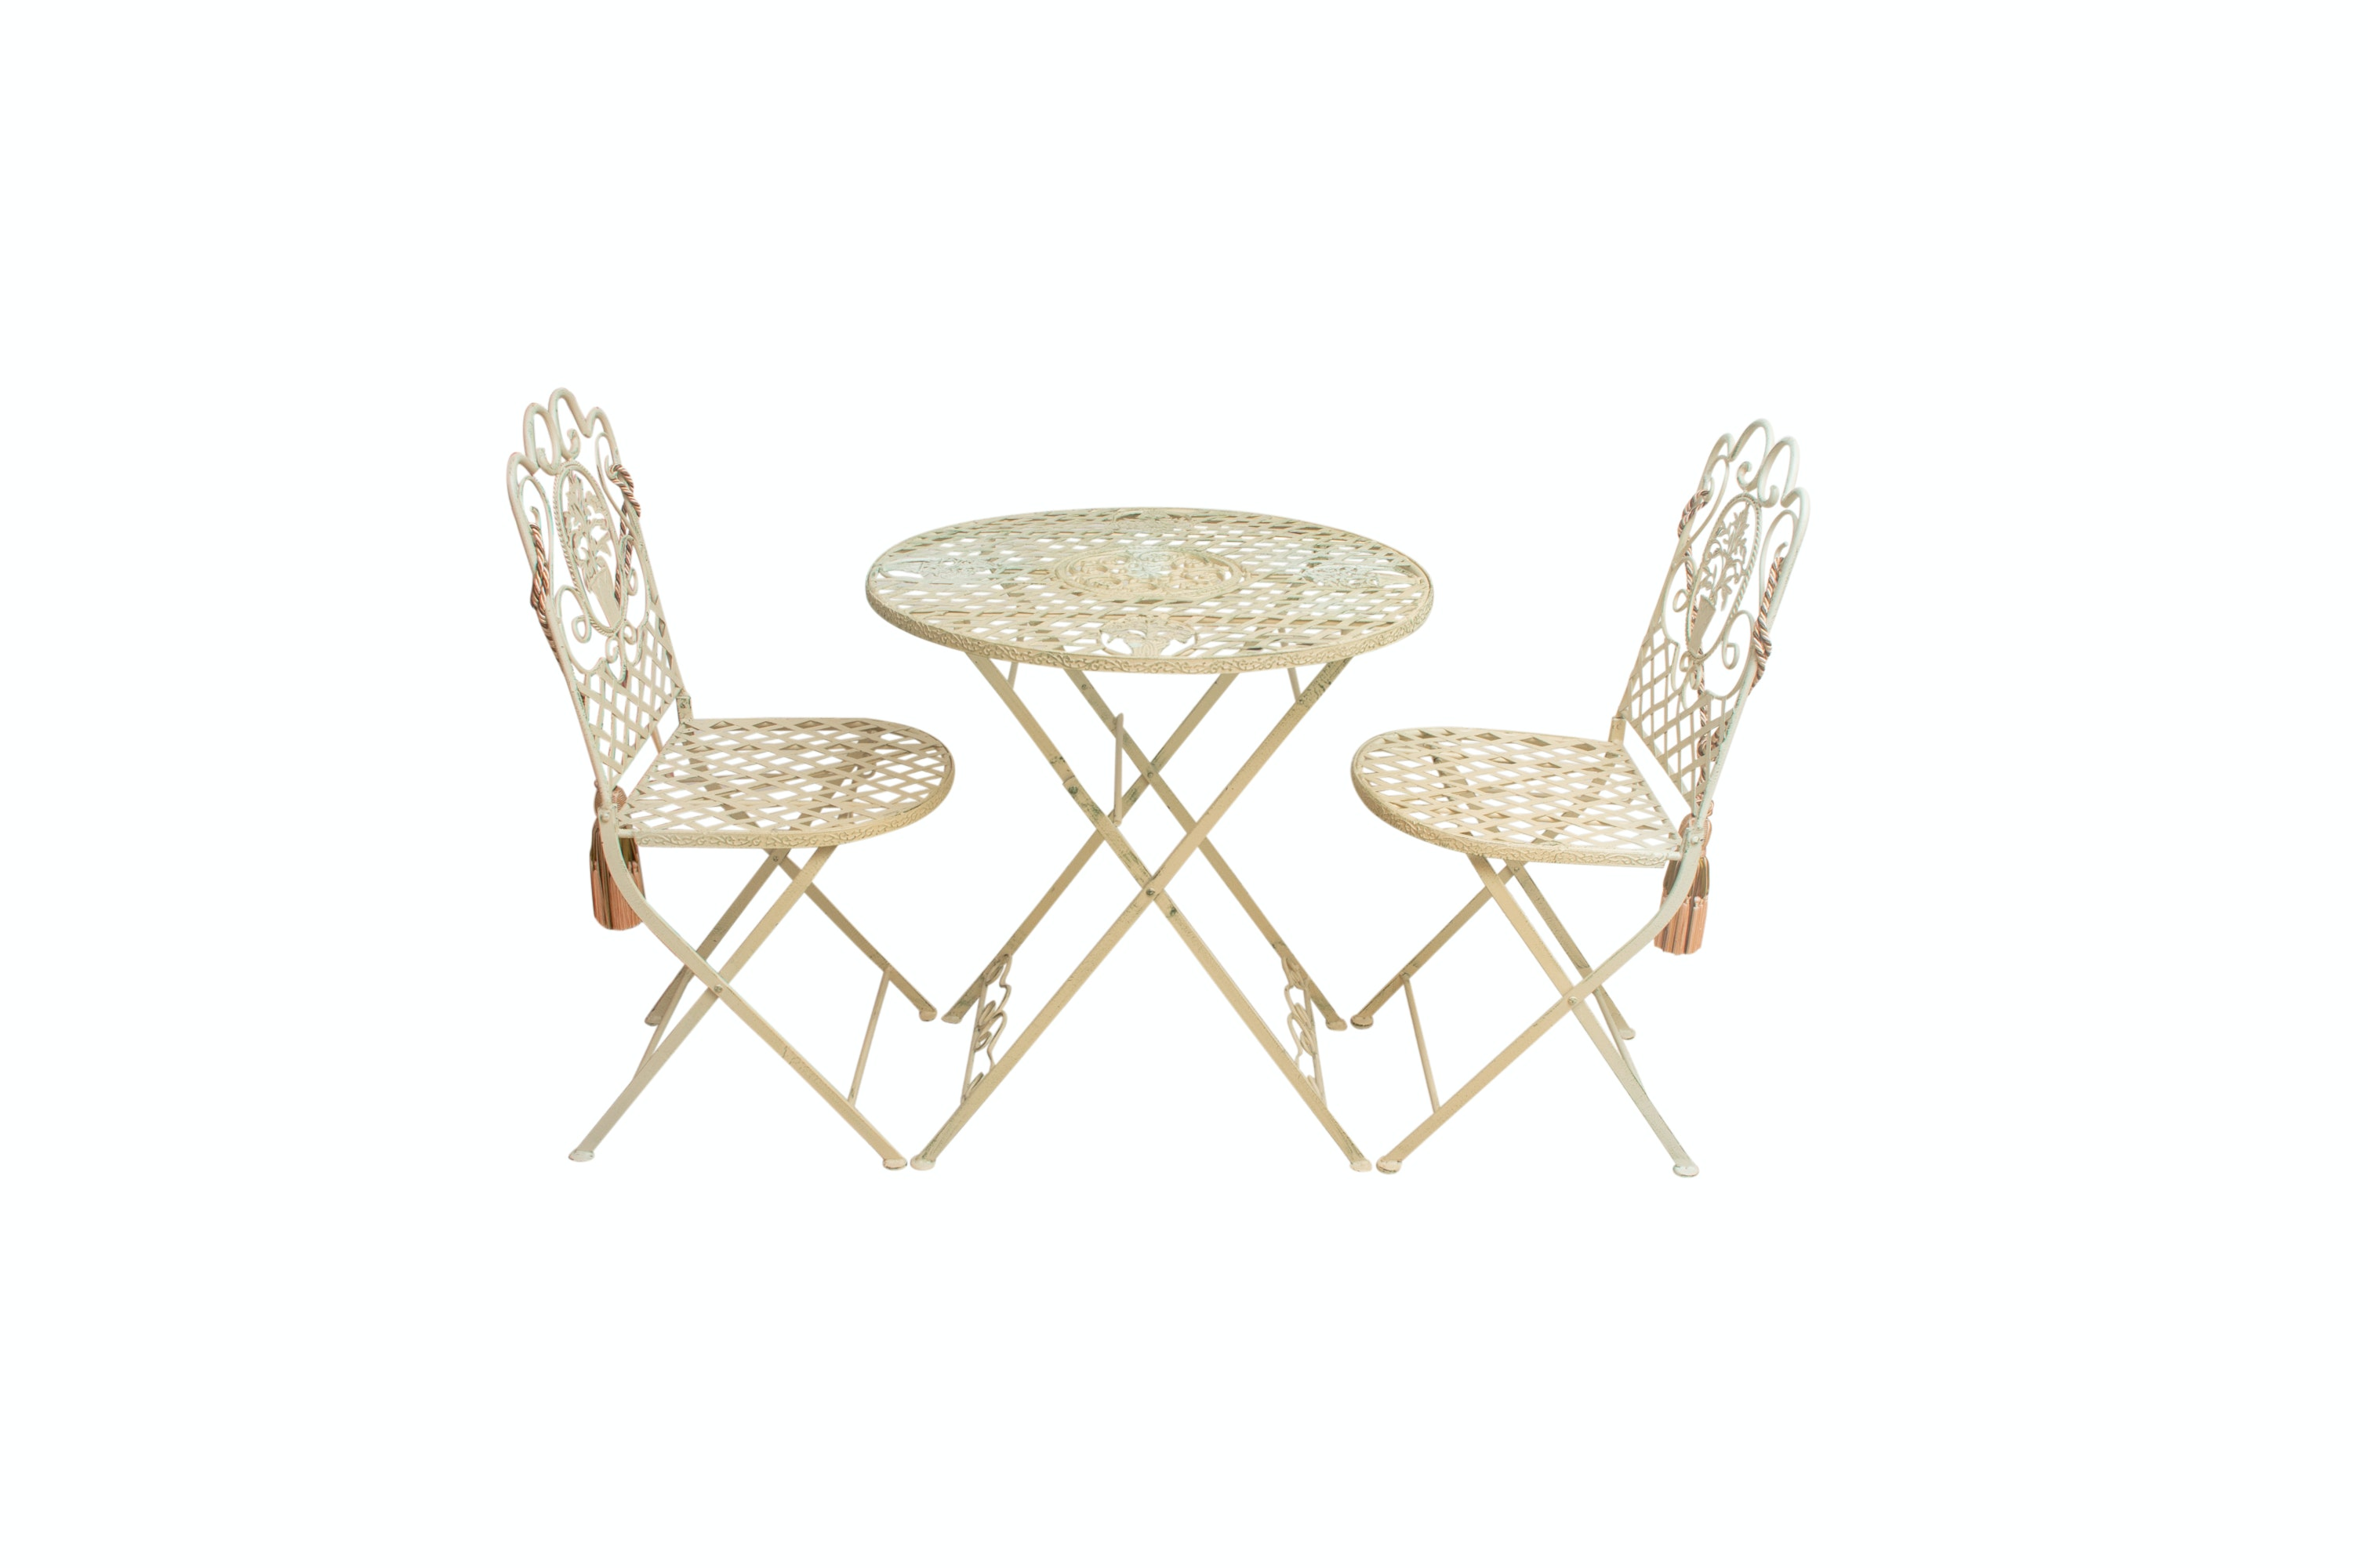 Vintage European Bistro Style Metal Folding Table and Chairs